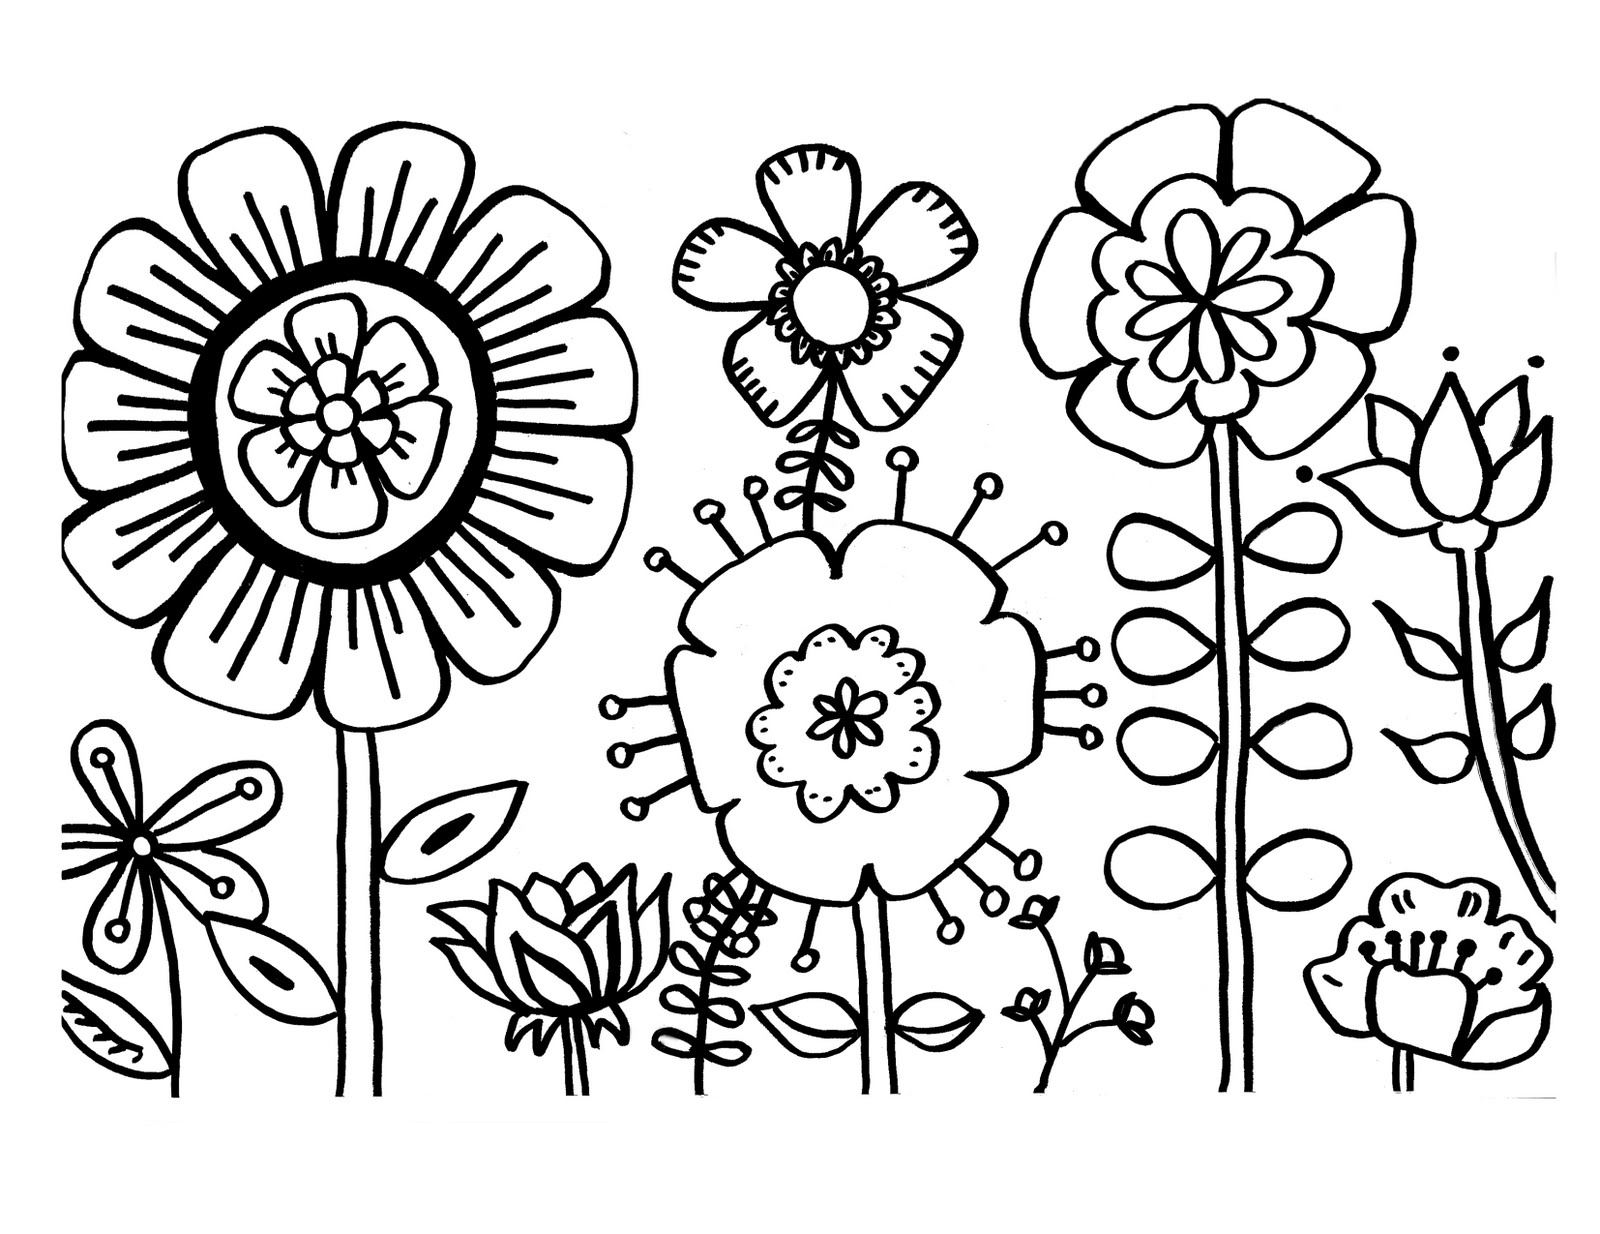 Free printable flower coloring pages for kids best for Easy flower coloring pages